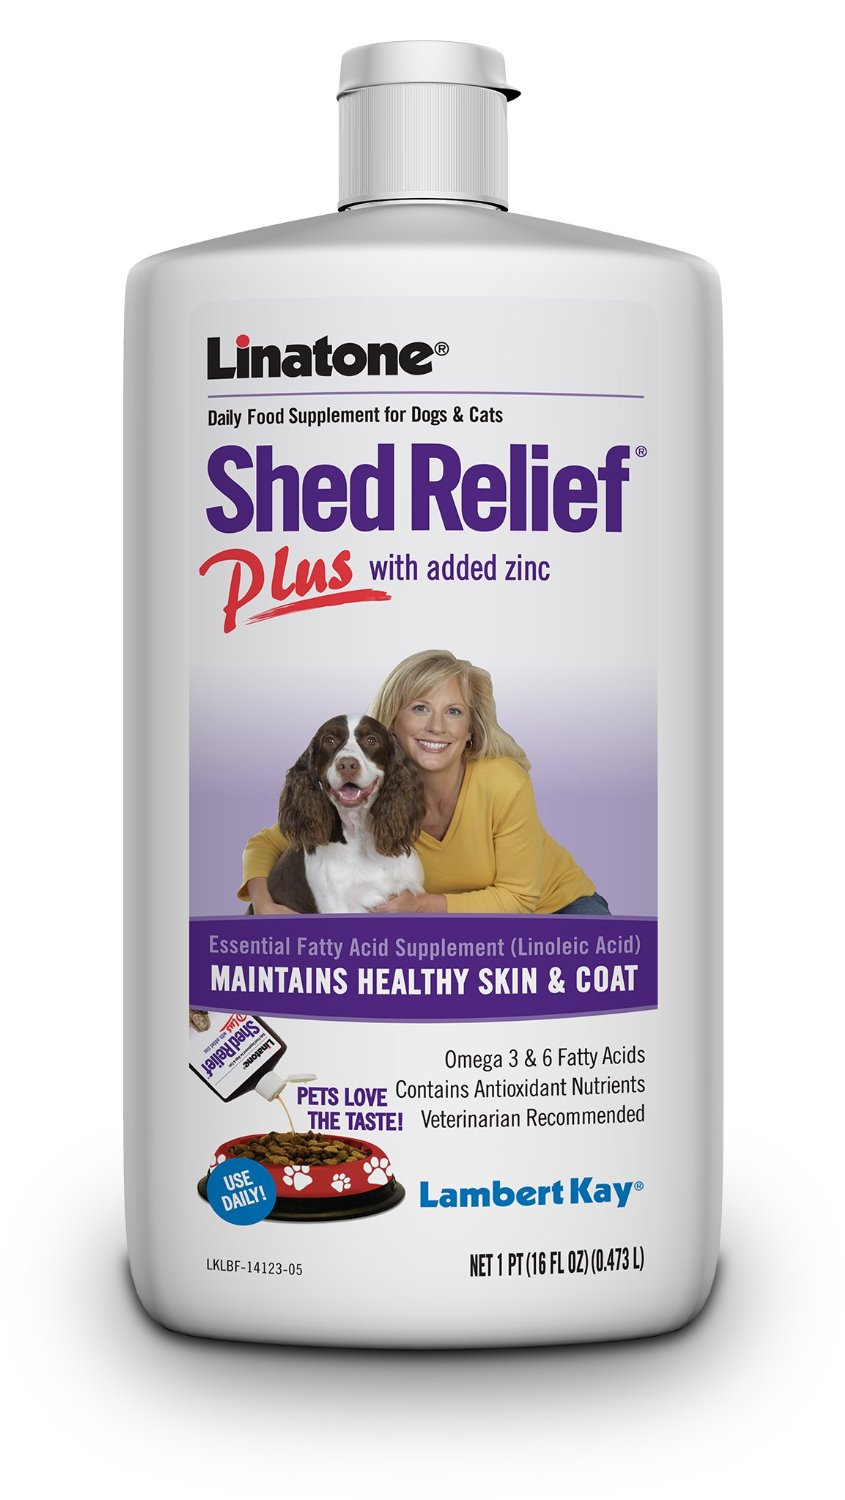 Lambert Kay Linatone Shed Relief Plus Dog and Cat Skin and Coat Liquid Supplement